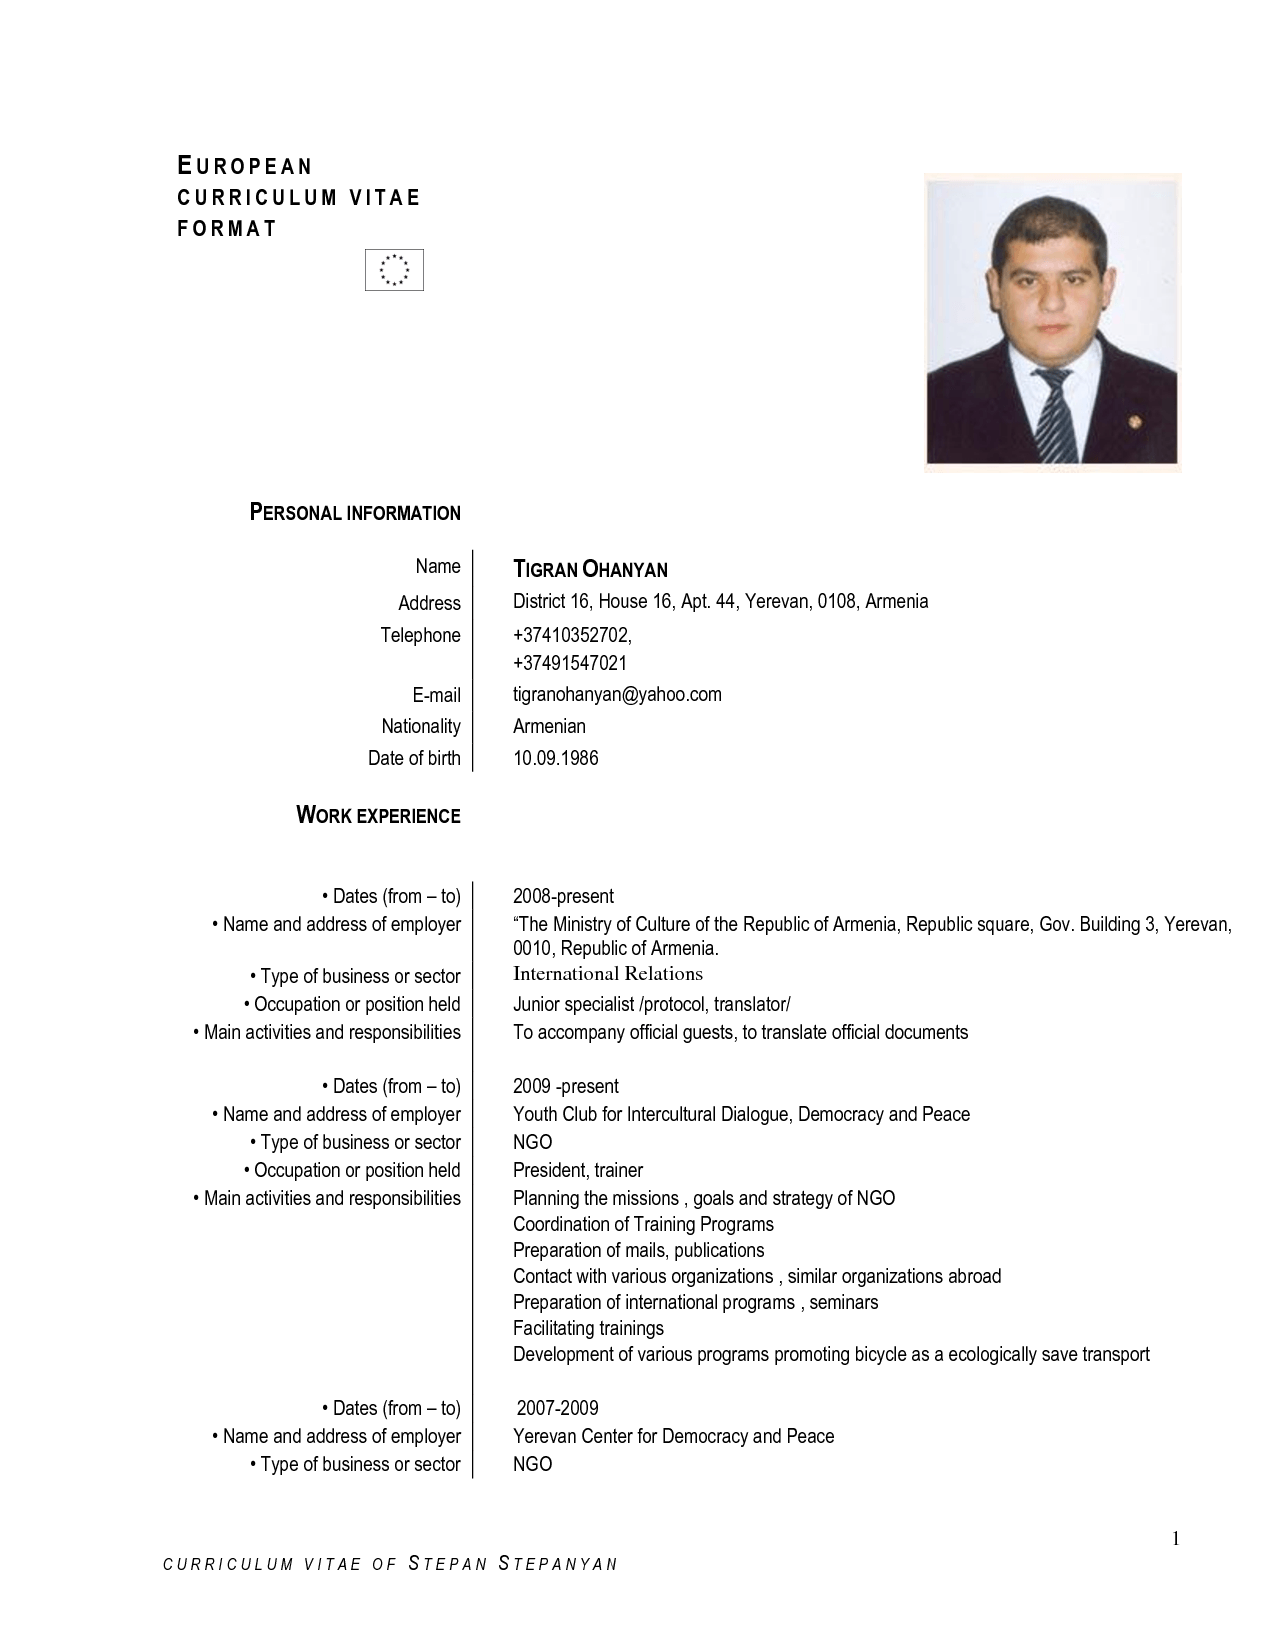 cv in english photo